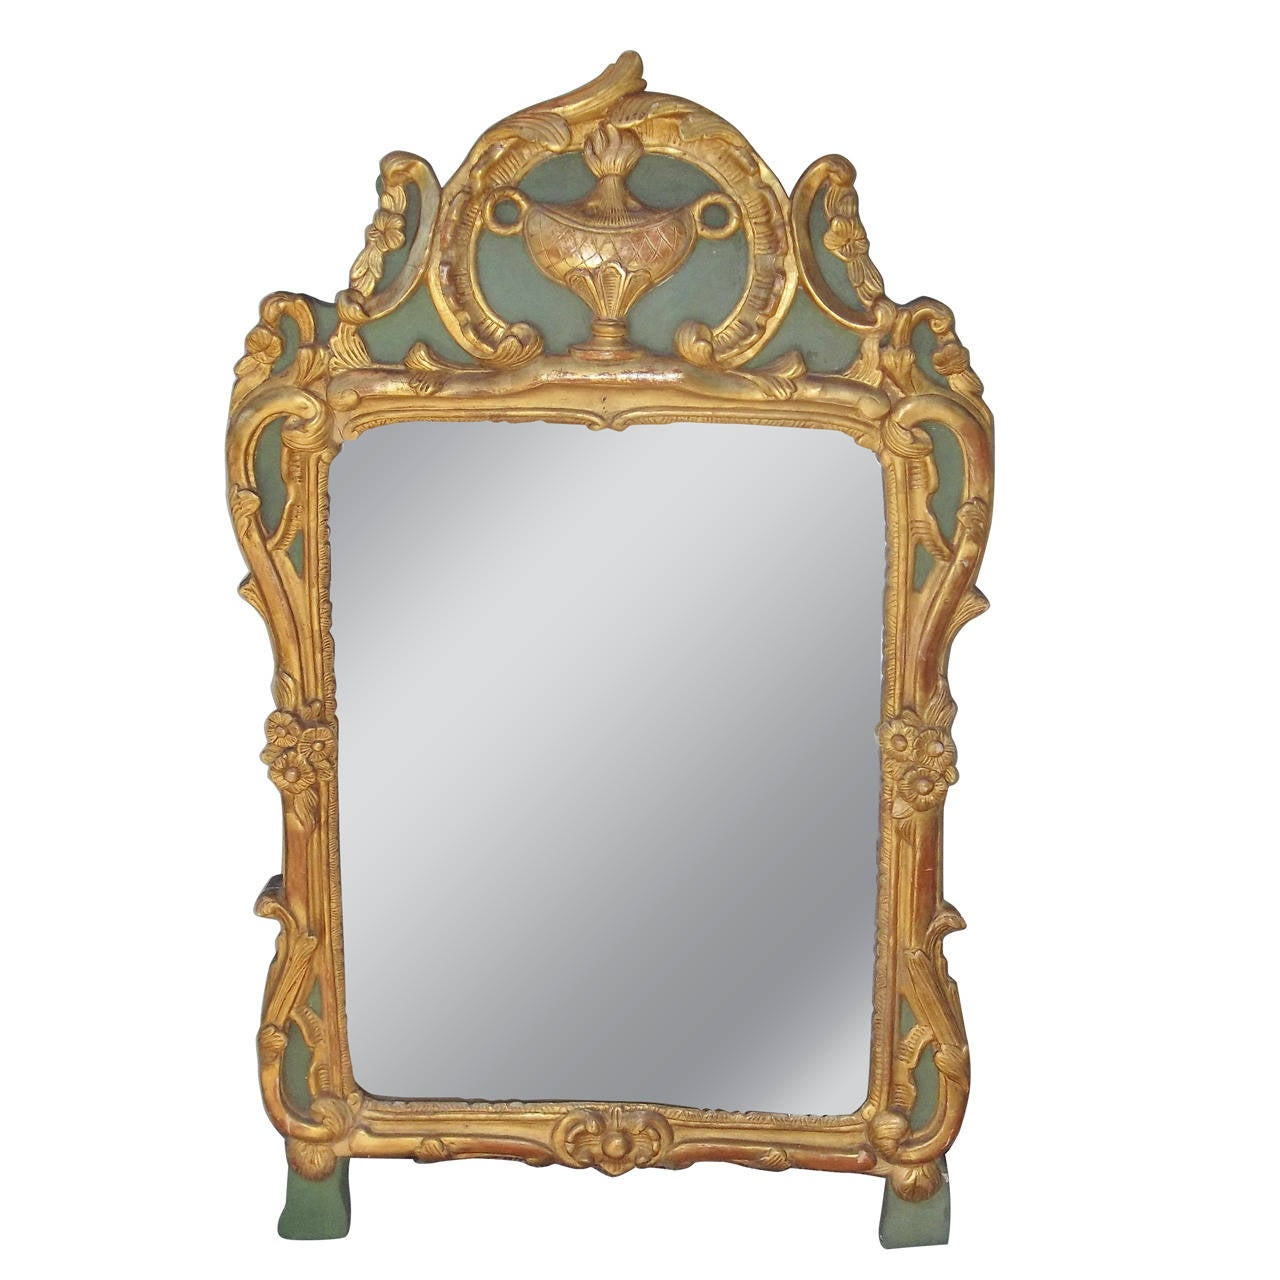 Louis XV Giltwood Mirror Re-decorated Or Refreshed